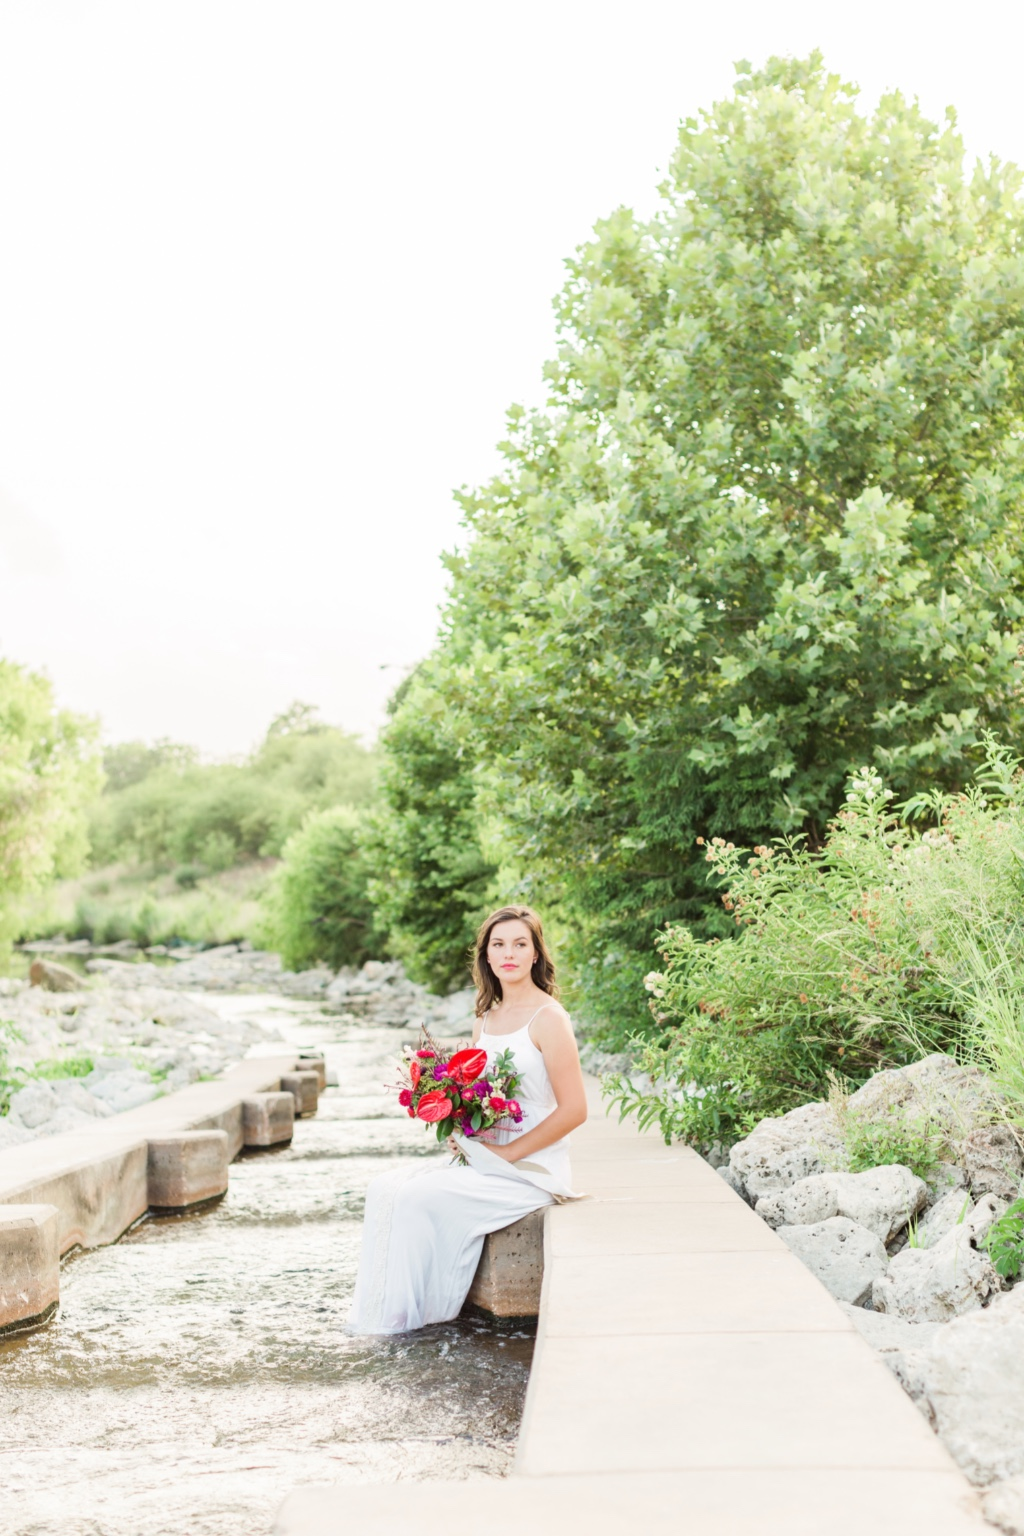 Thinking about eloping? Let's go on an adventure! #samanthacasasphotography